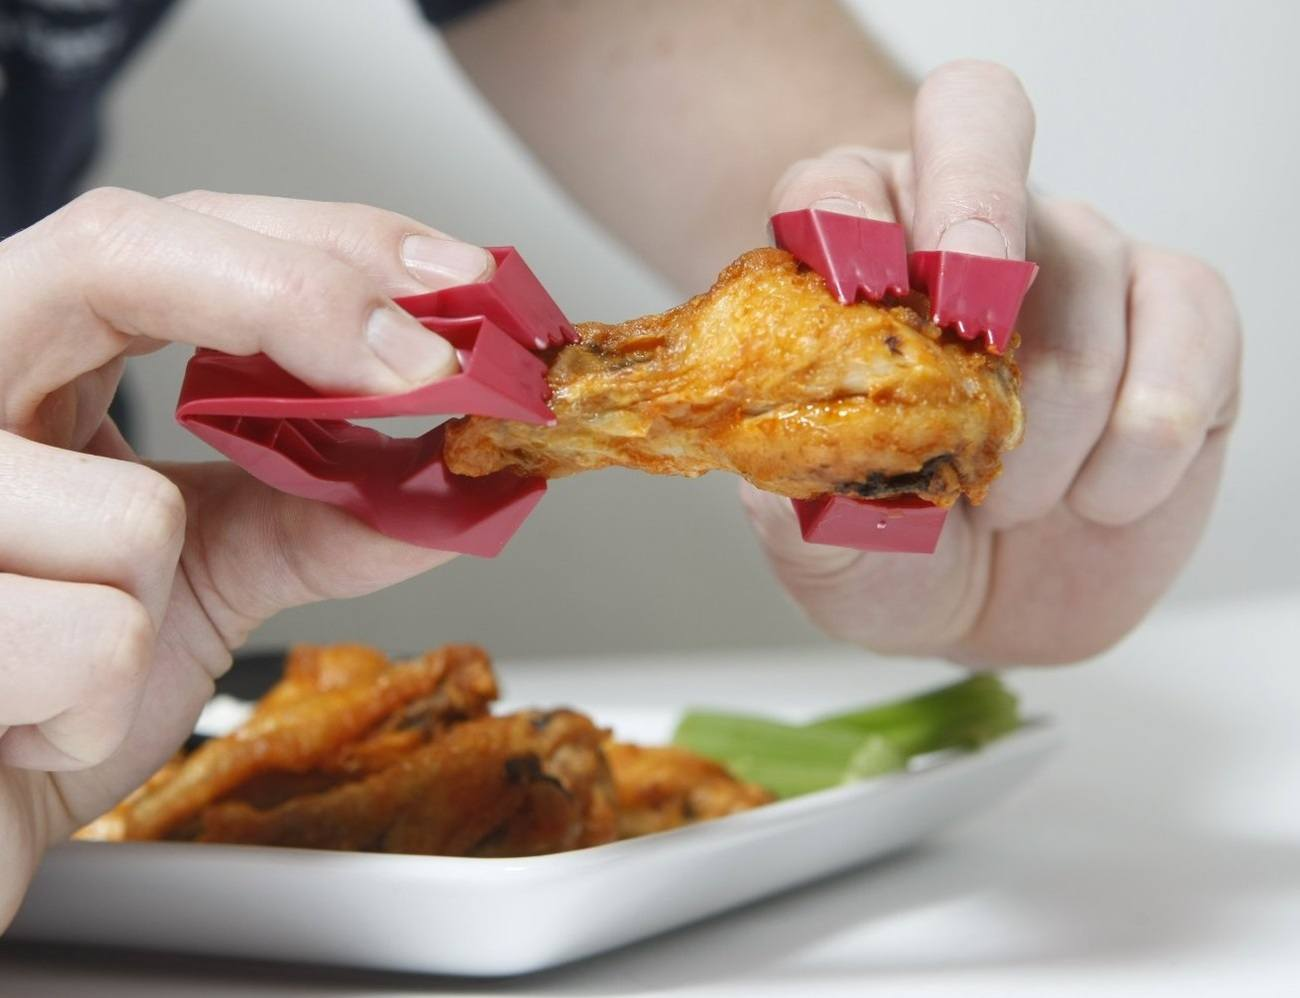 Trongs – Multi-Purpose Finger Food Utensils